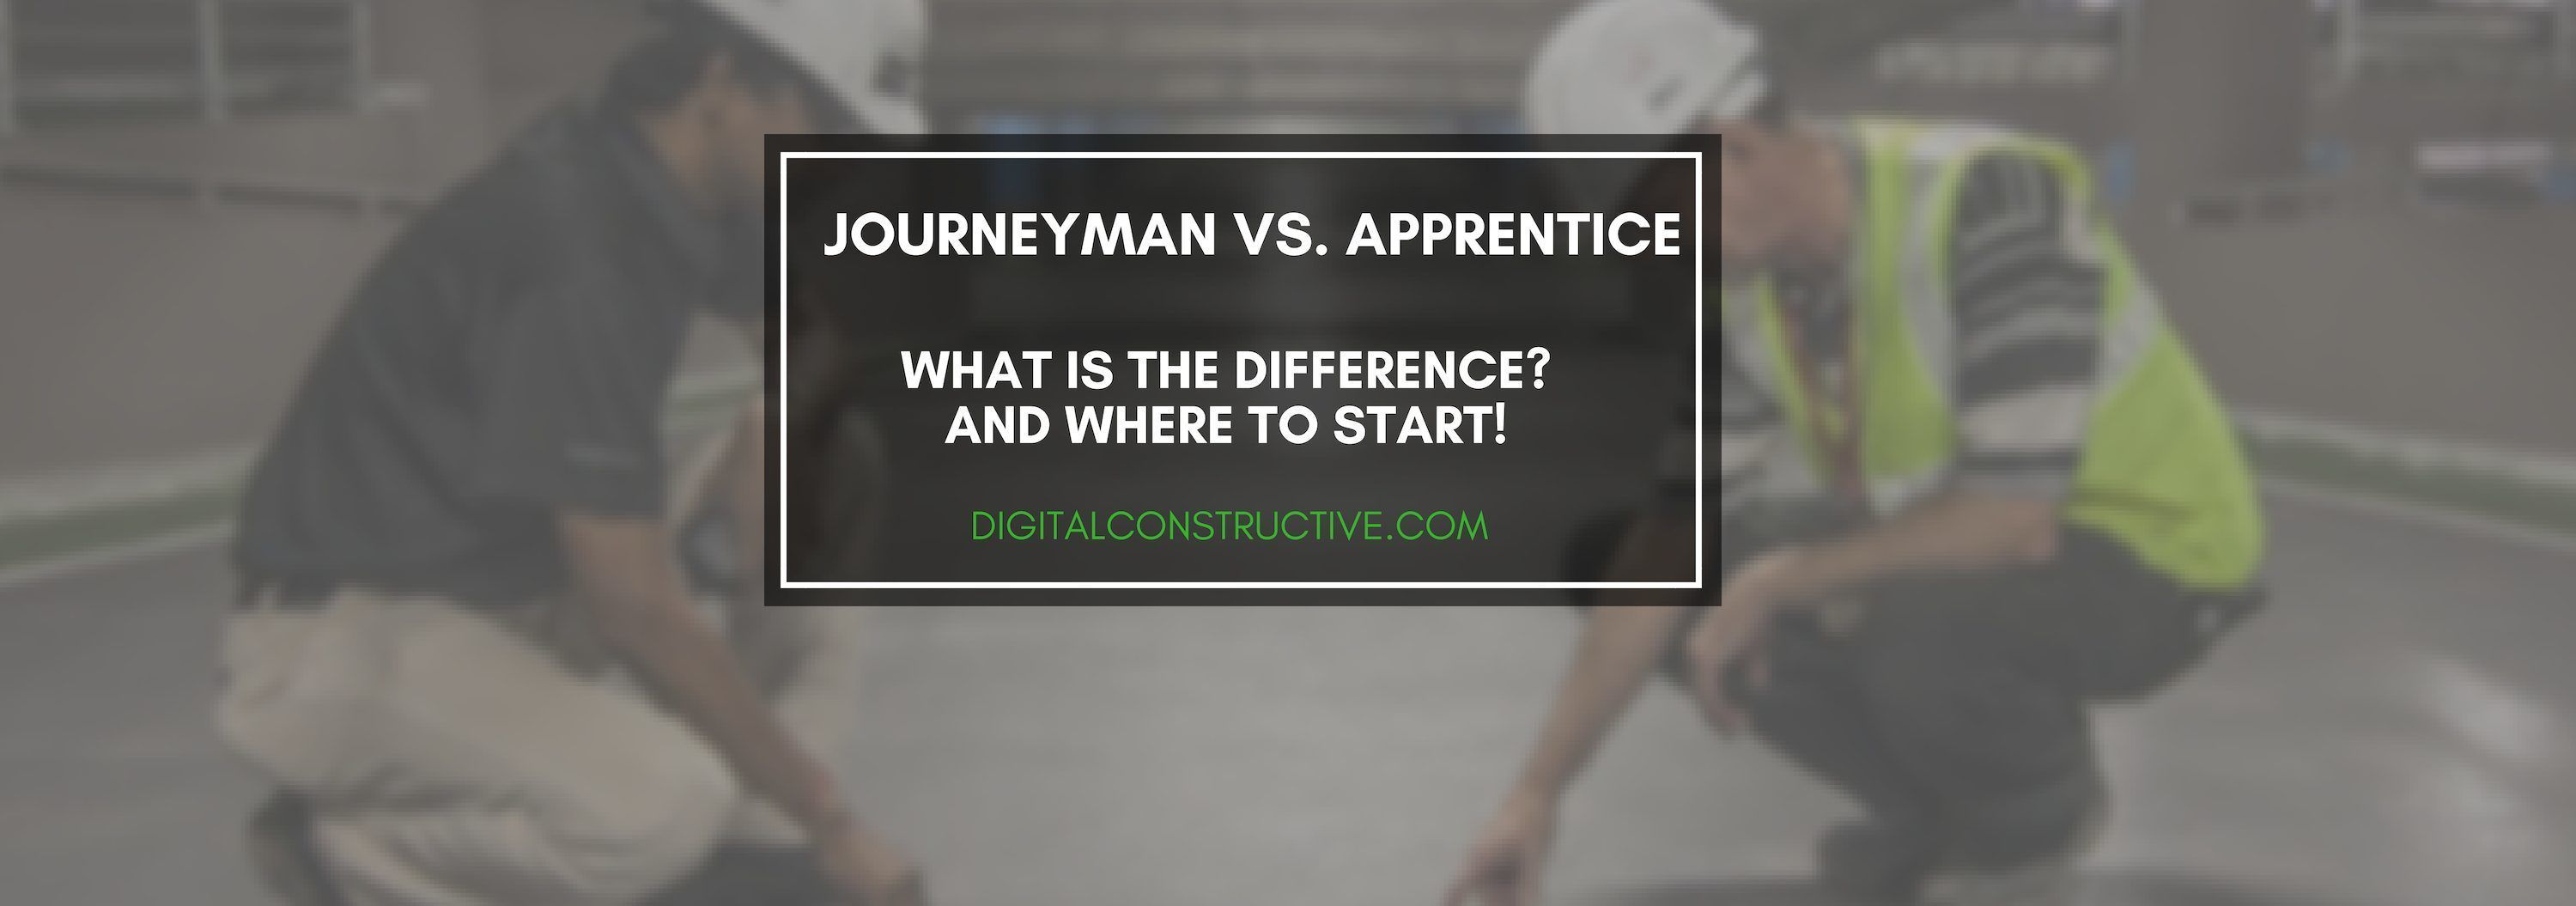 image for a blog post about the difference between an apprentice and a journeyman